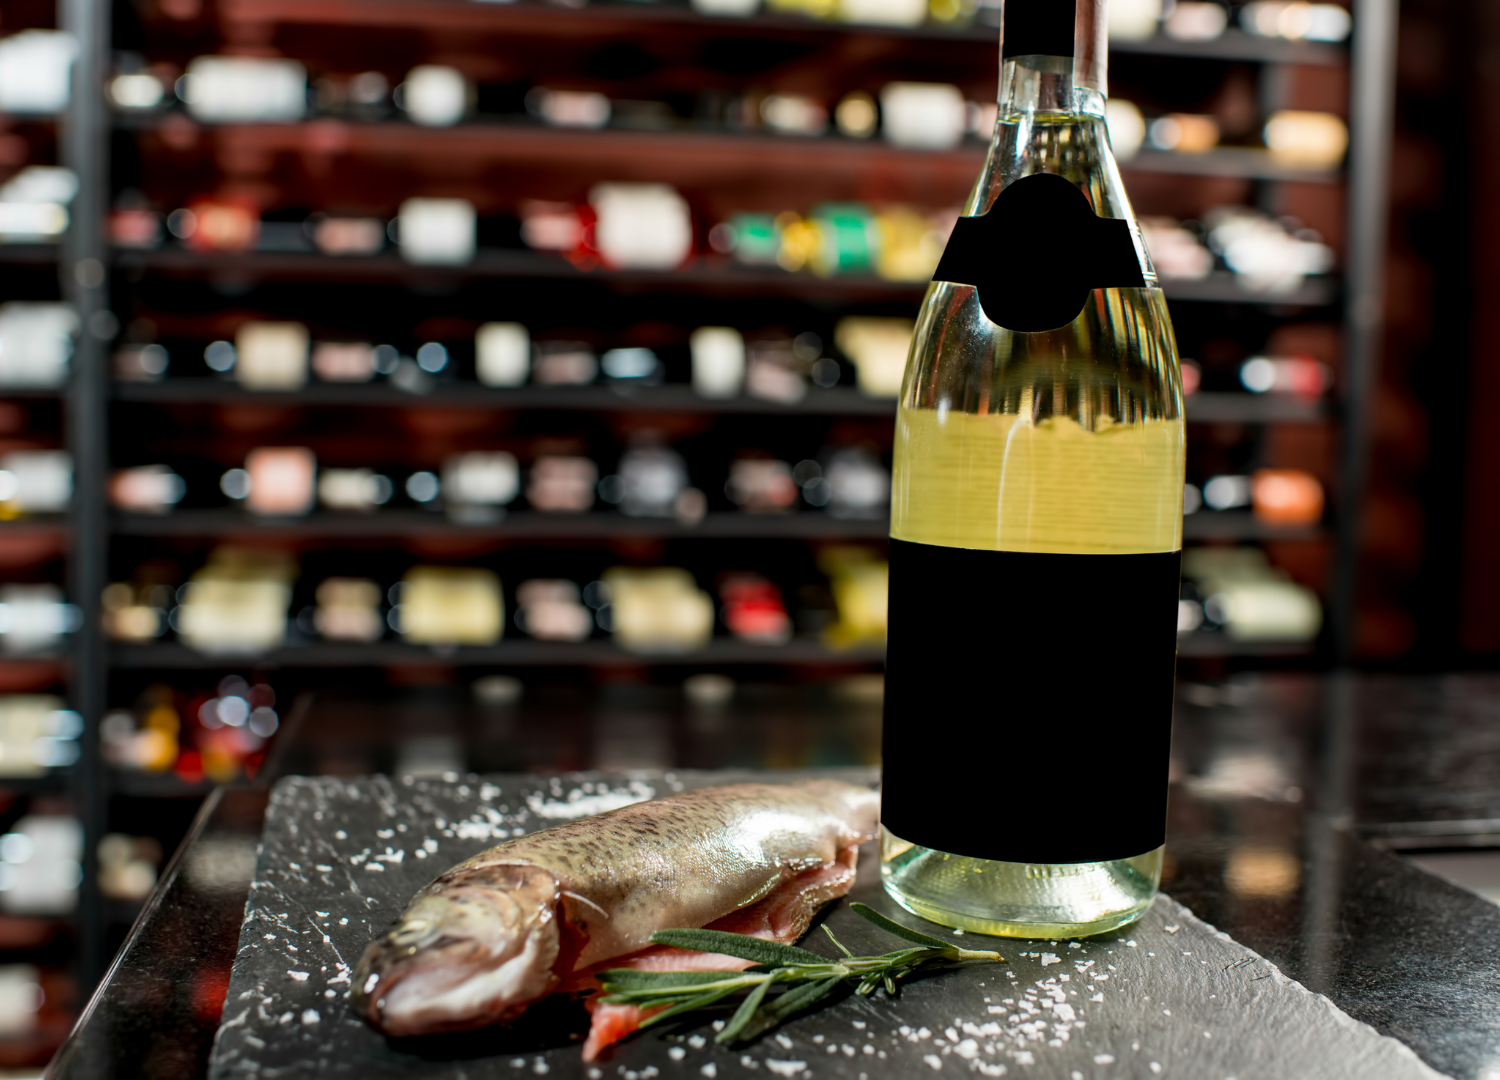 Trout and wine